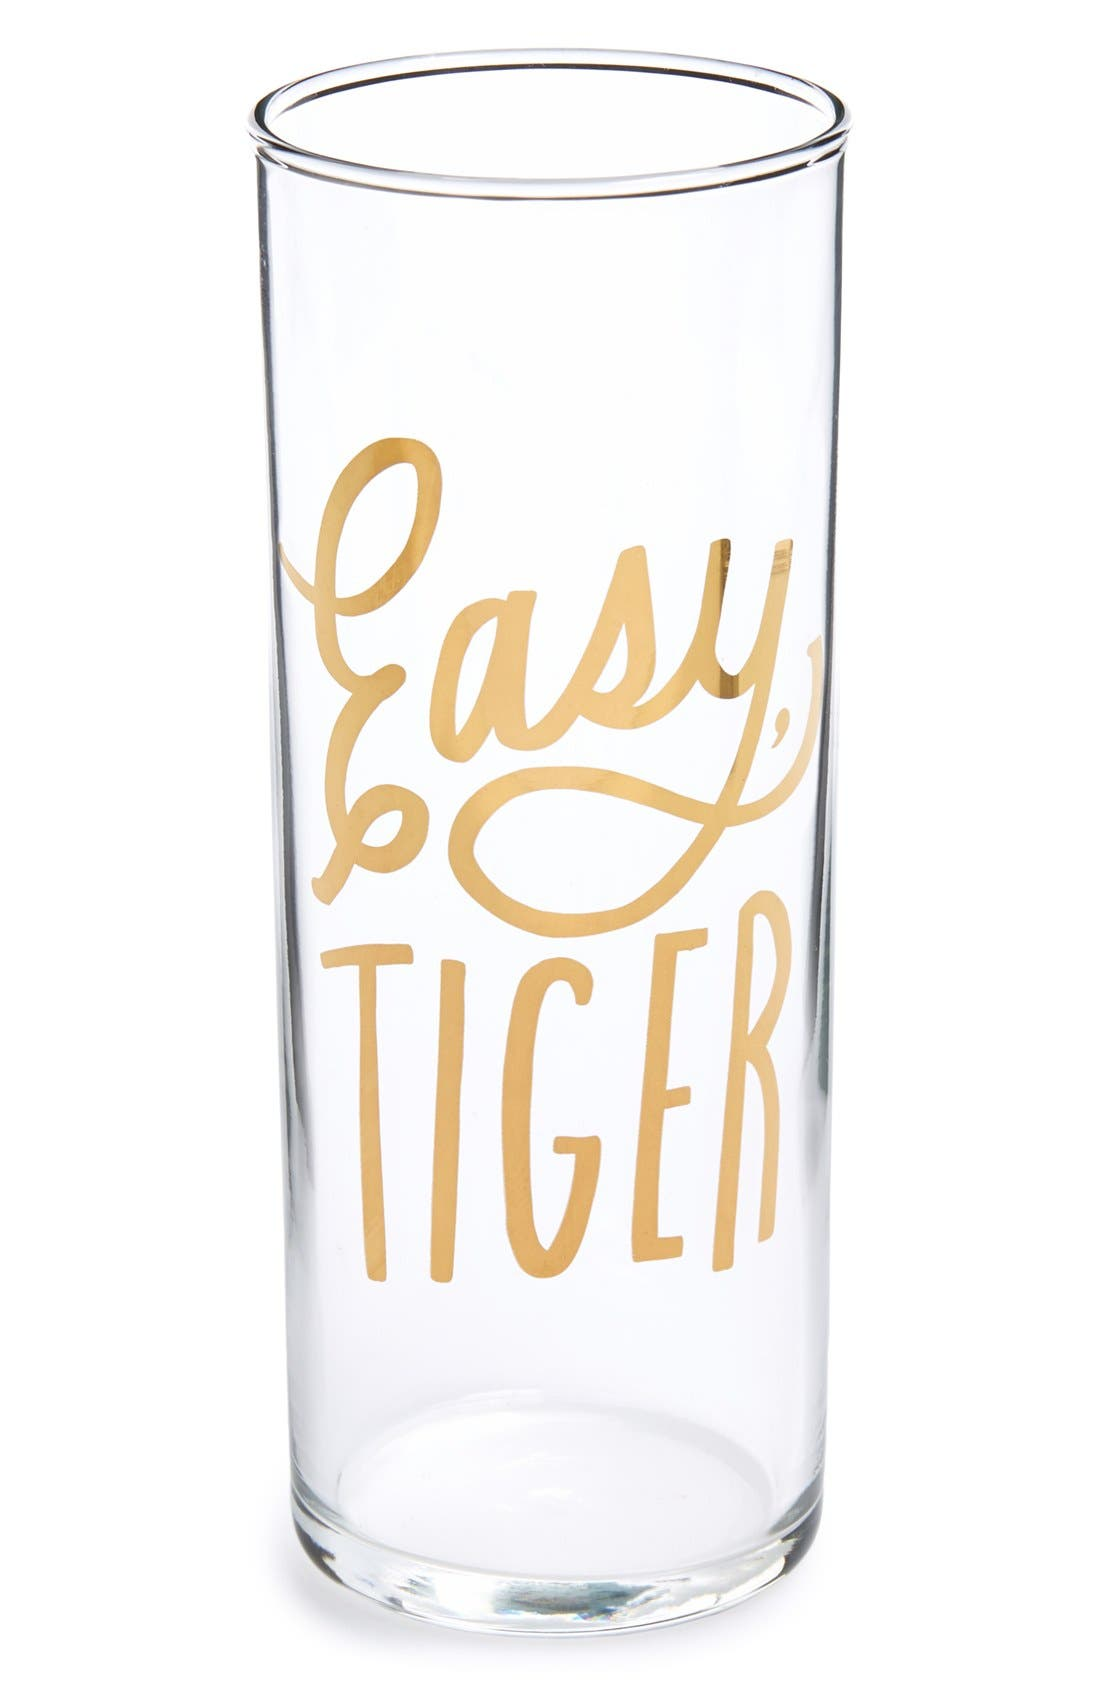 Main Image - Easy, Tiger Cocktail Glass